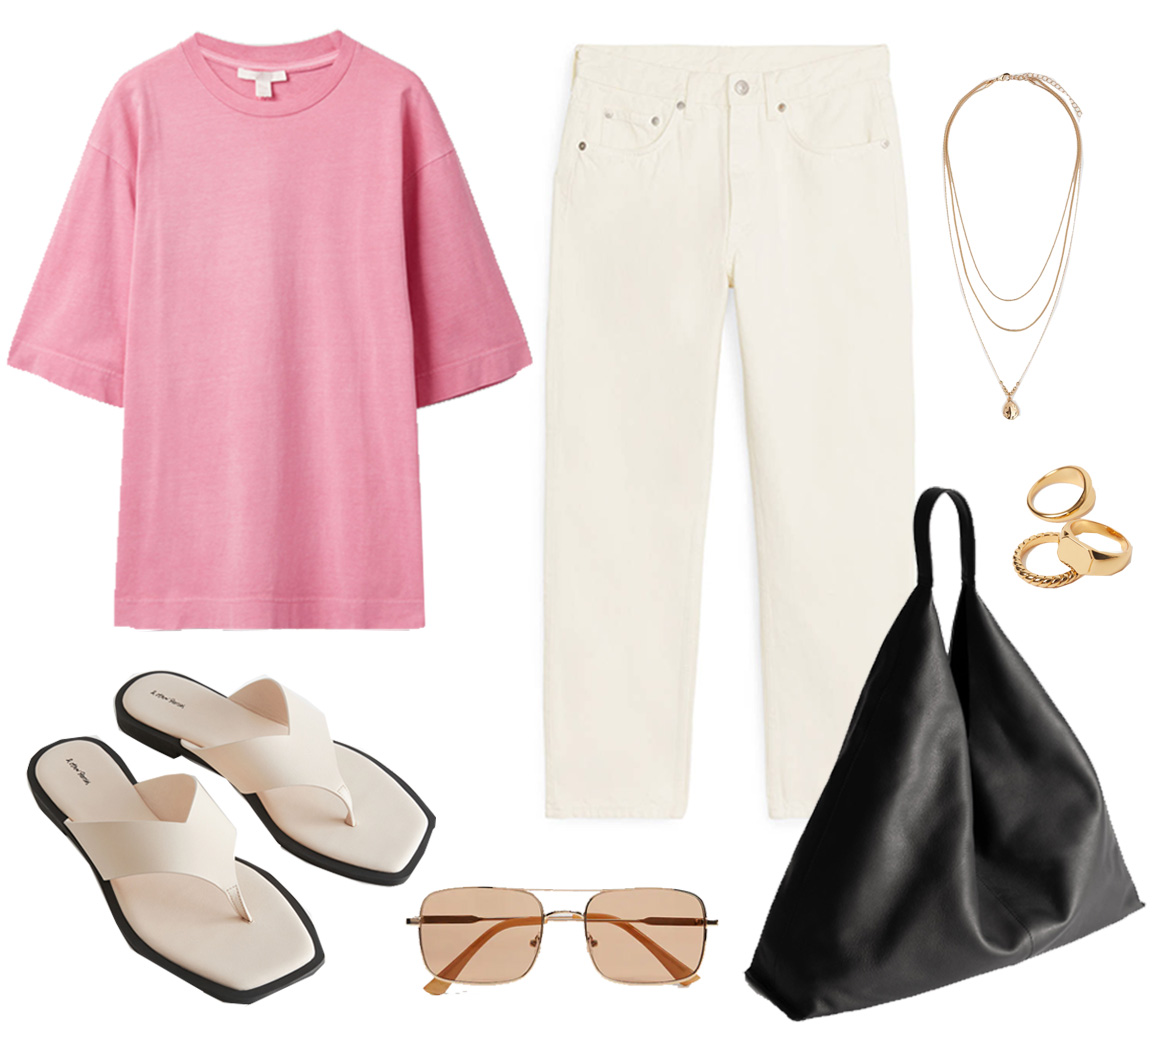 pink t-shirt outfit ideas 2021